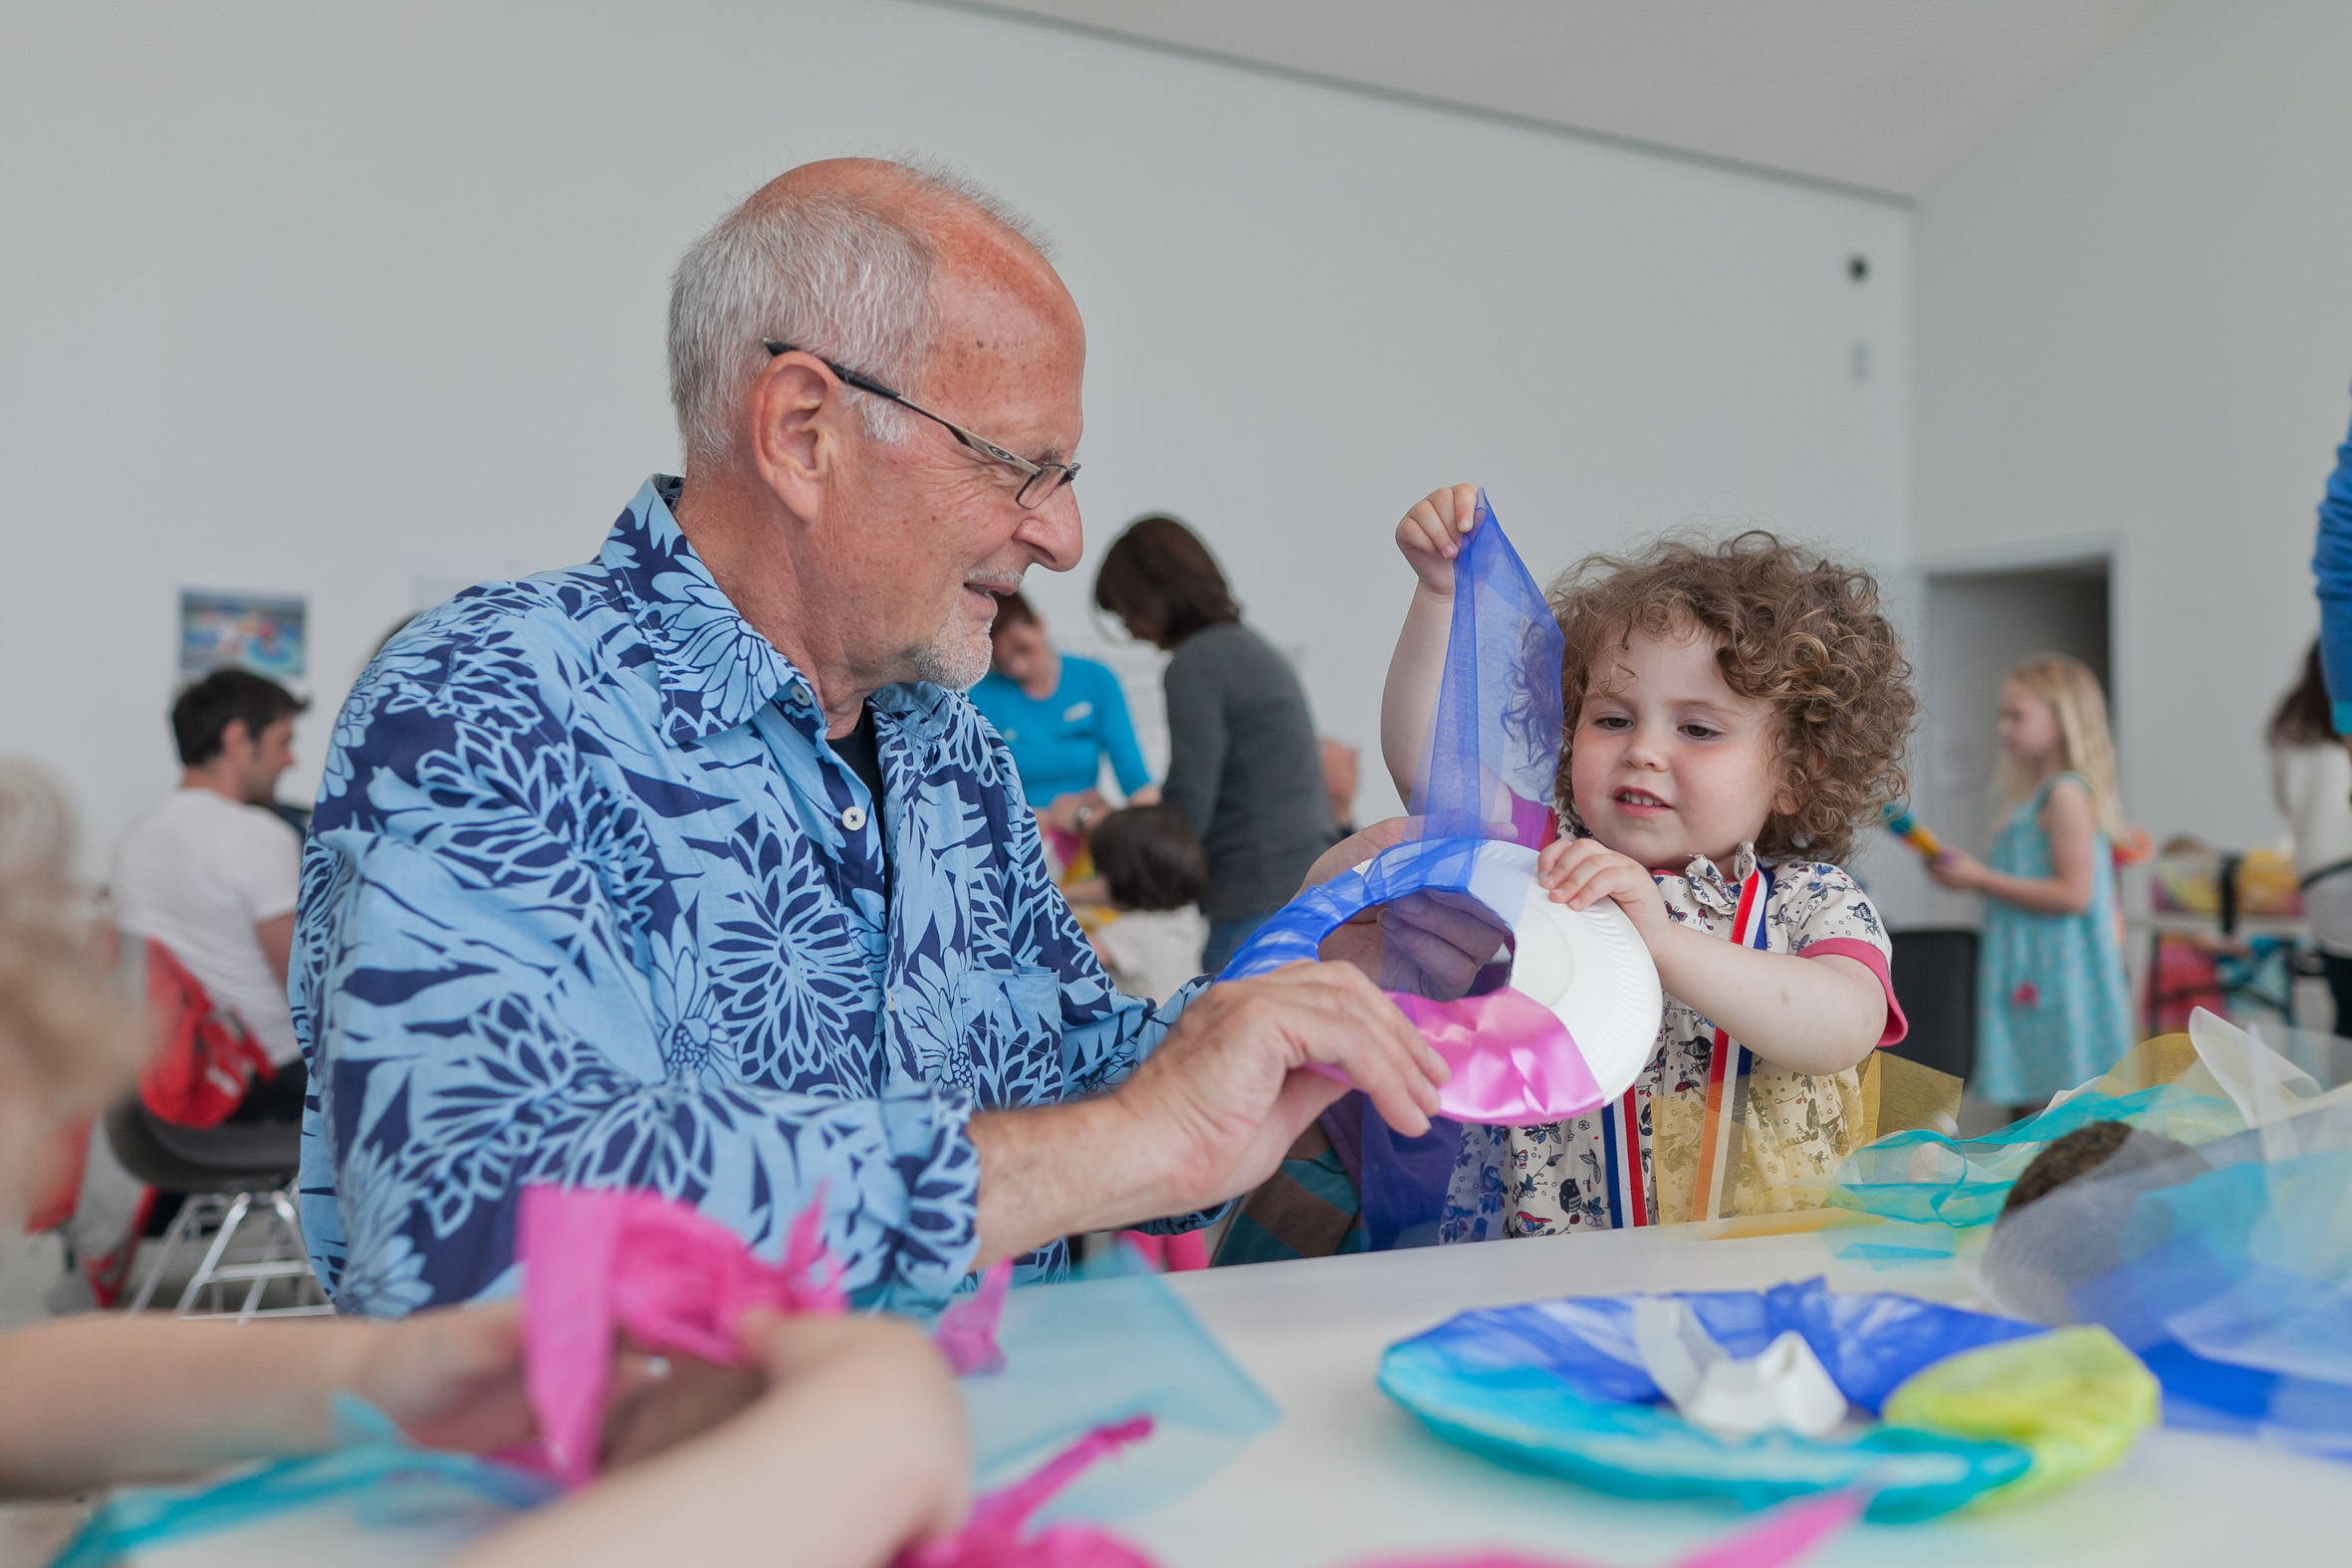 A young child and an elderly man make craft art together.